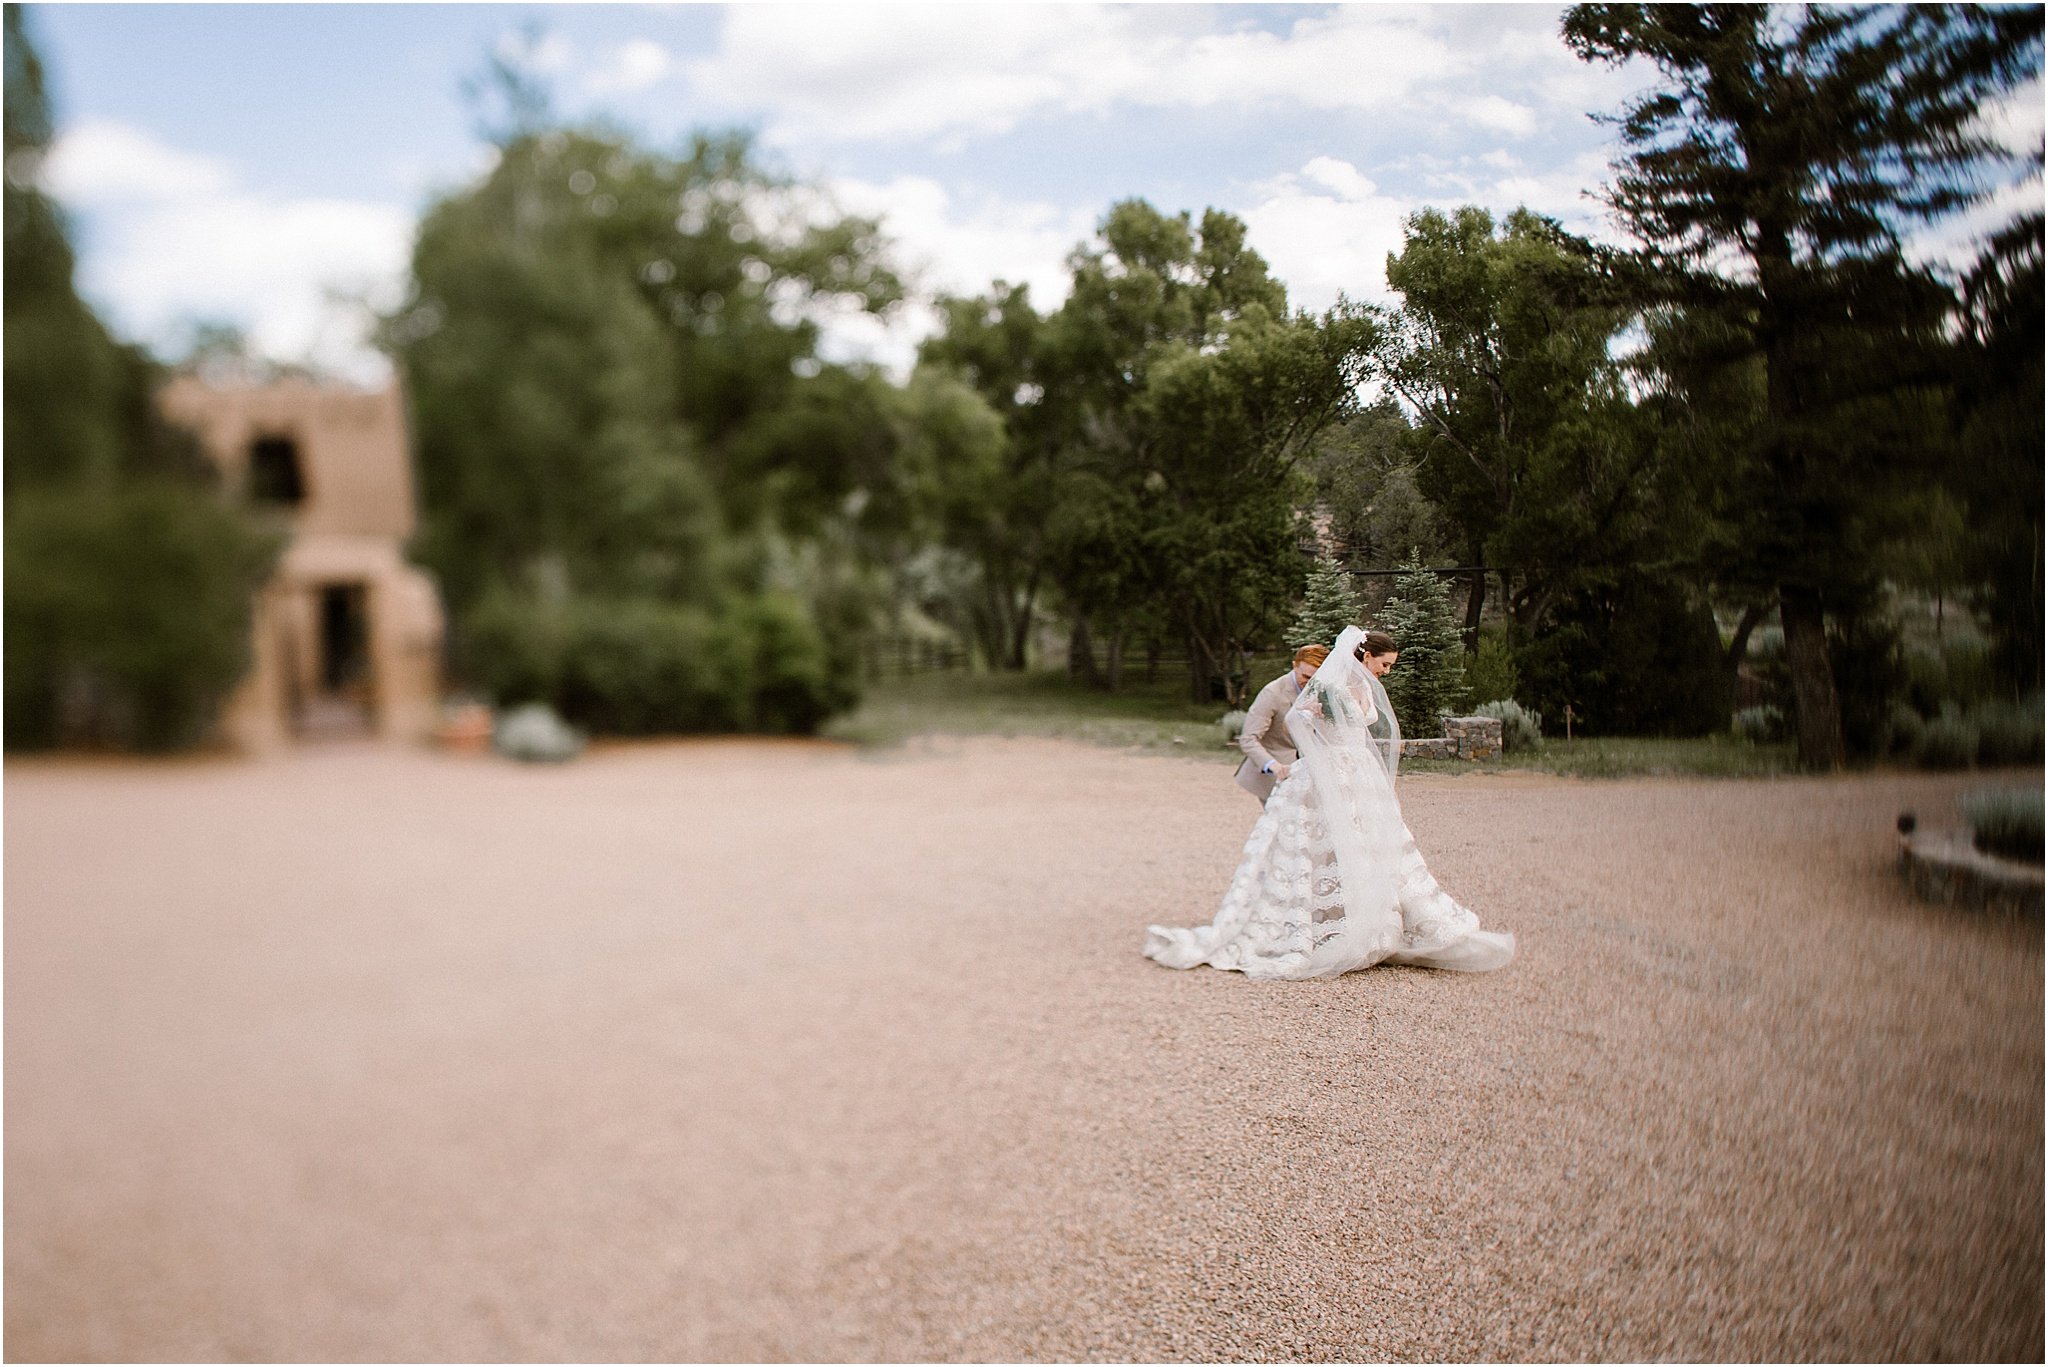 AMELIA_JASON_SANTA FE_ WEDDING_BLUE ROSE PHOTOGRAPHY86